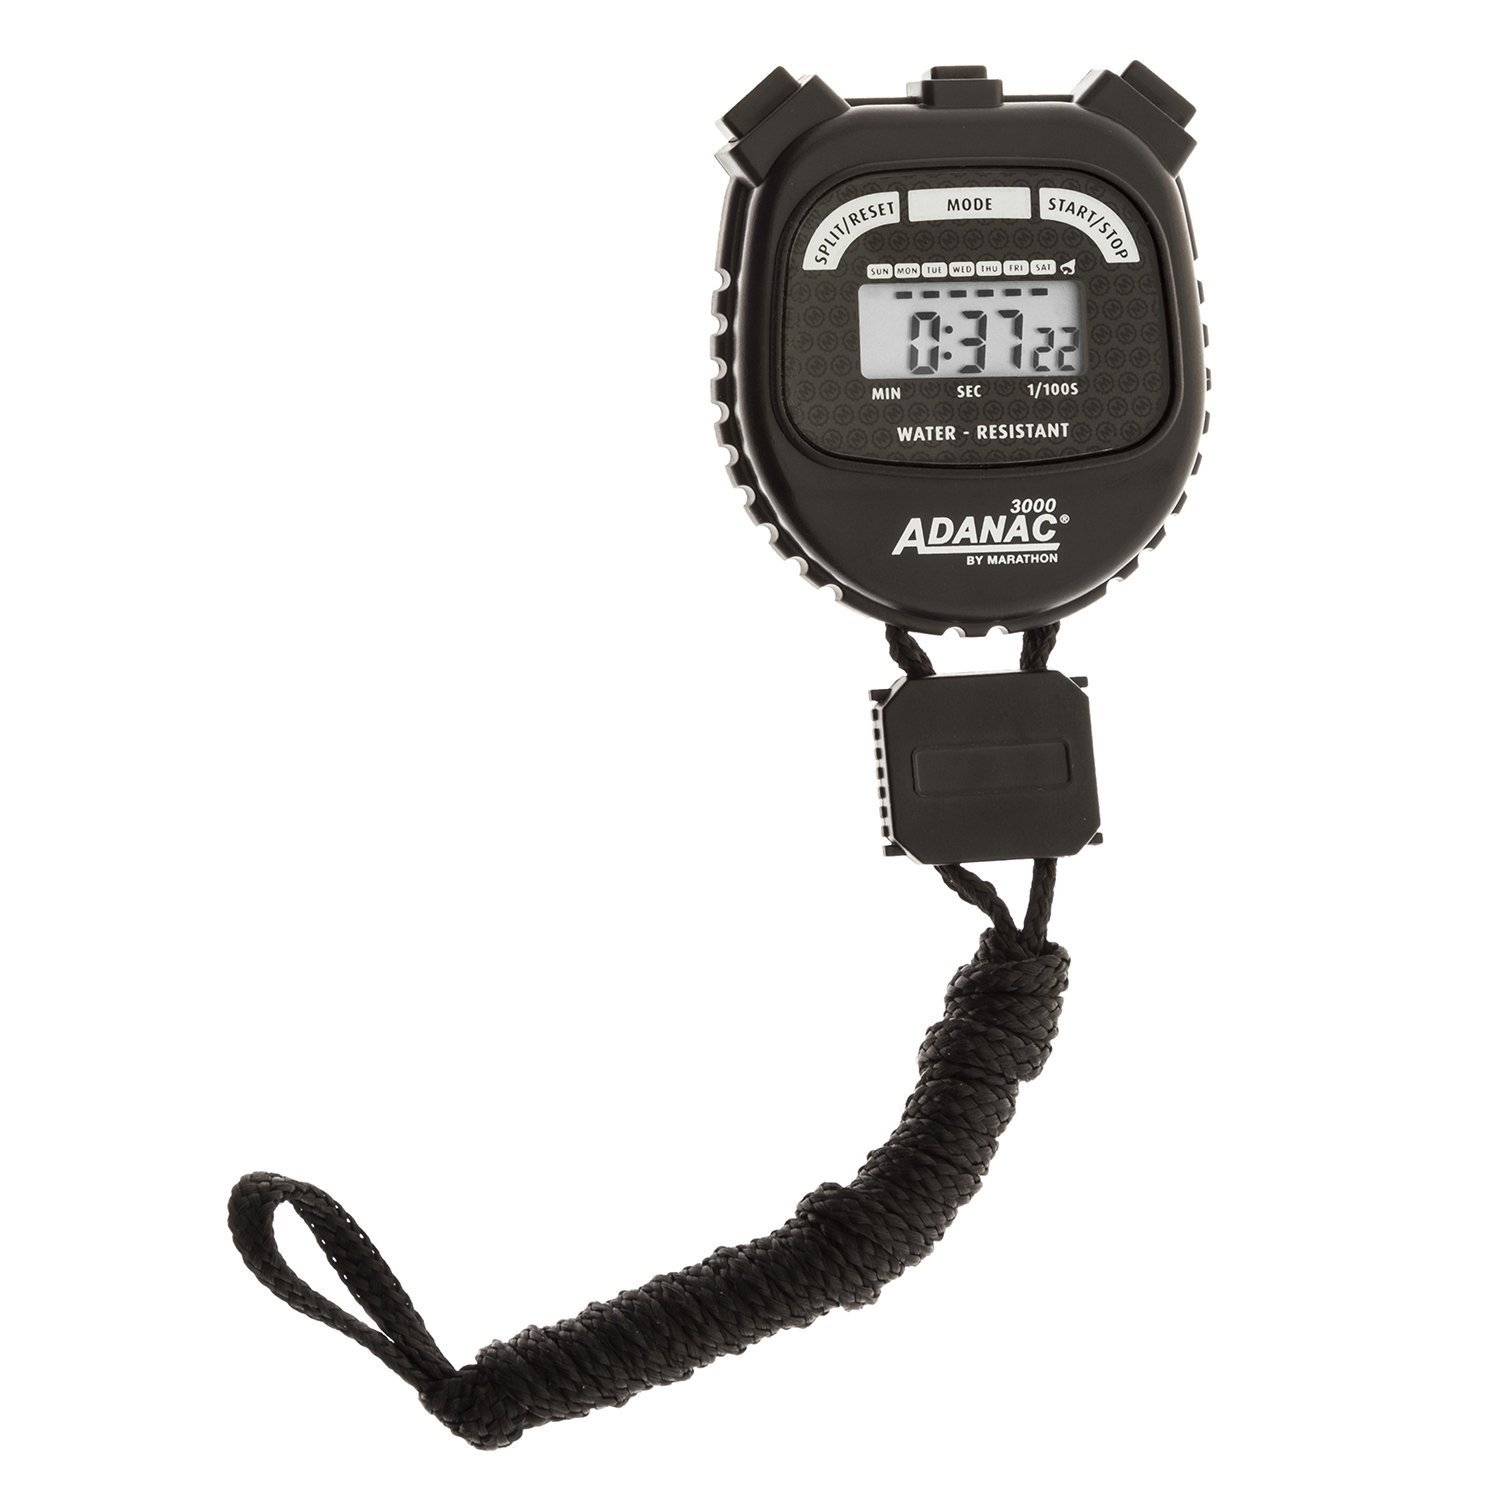 Marathon Water Resistant Adanac 3000 Digital Stopwatch with Extra Large Display and Buttons – Available in 2 Colors